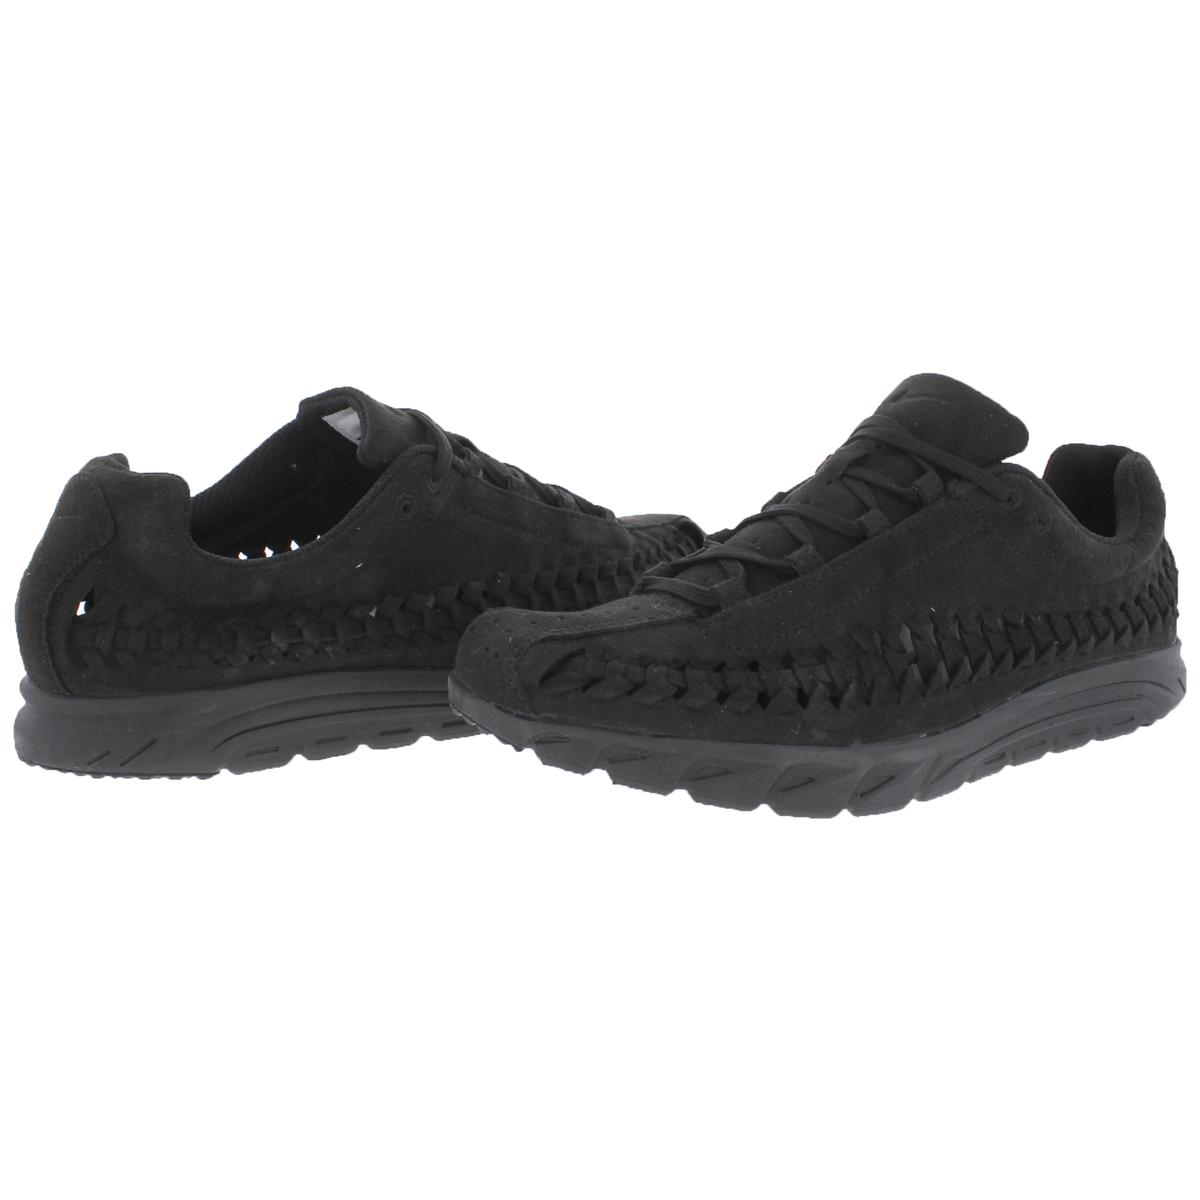 Nike-Mens-Mayfly-Woven-Suede-Woven-Training-Fashion-Sneakers-Shoes-BHFO-2898 thumbnail 4